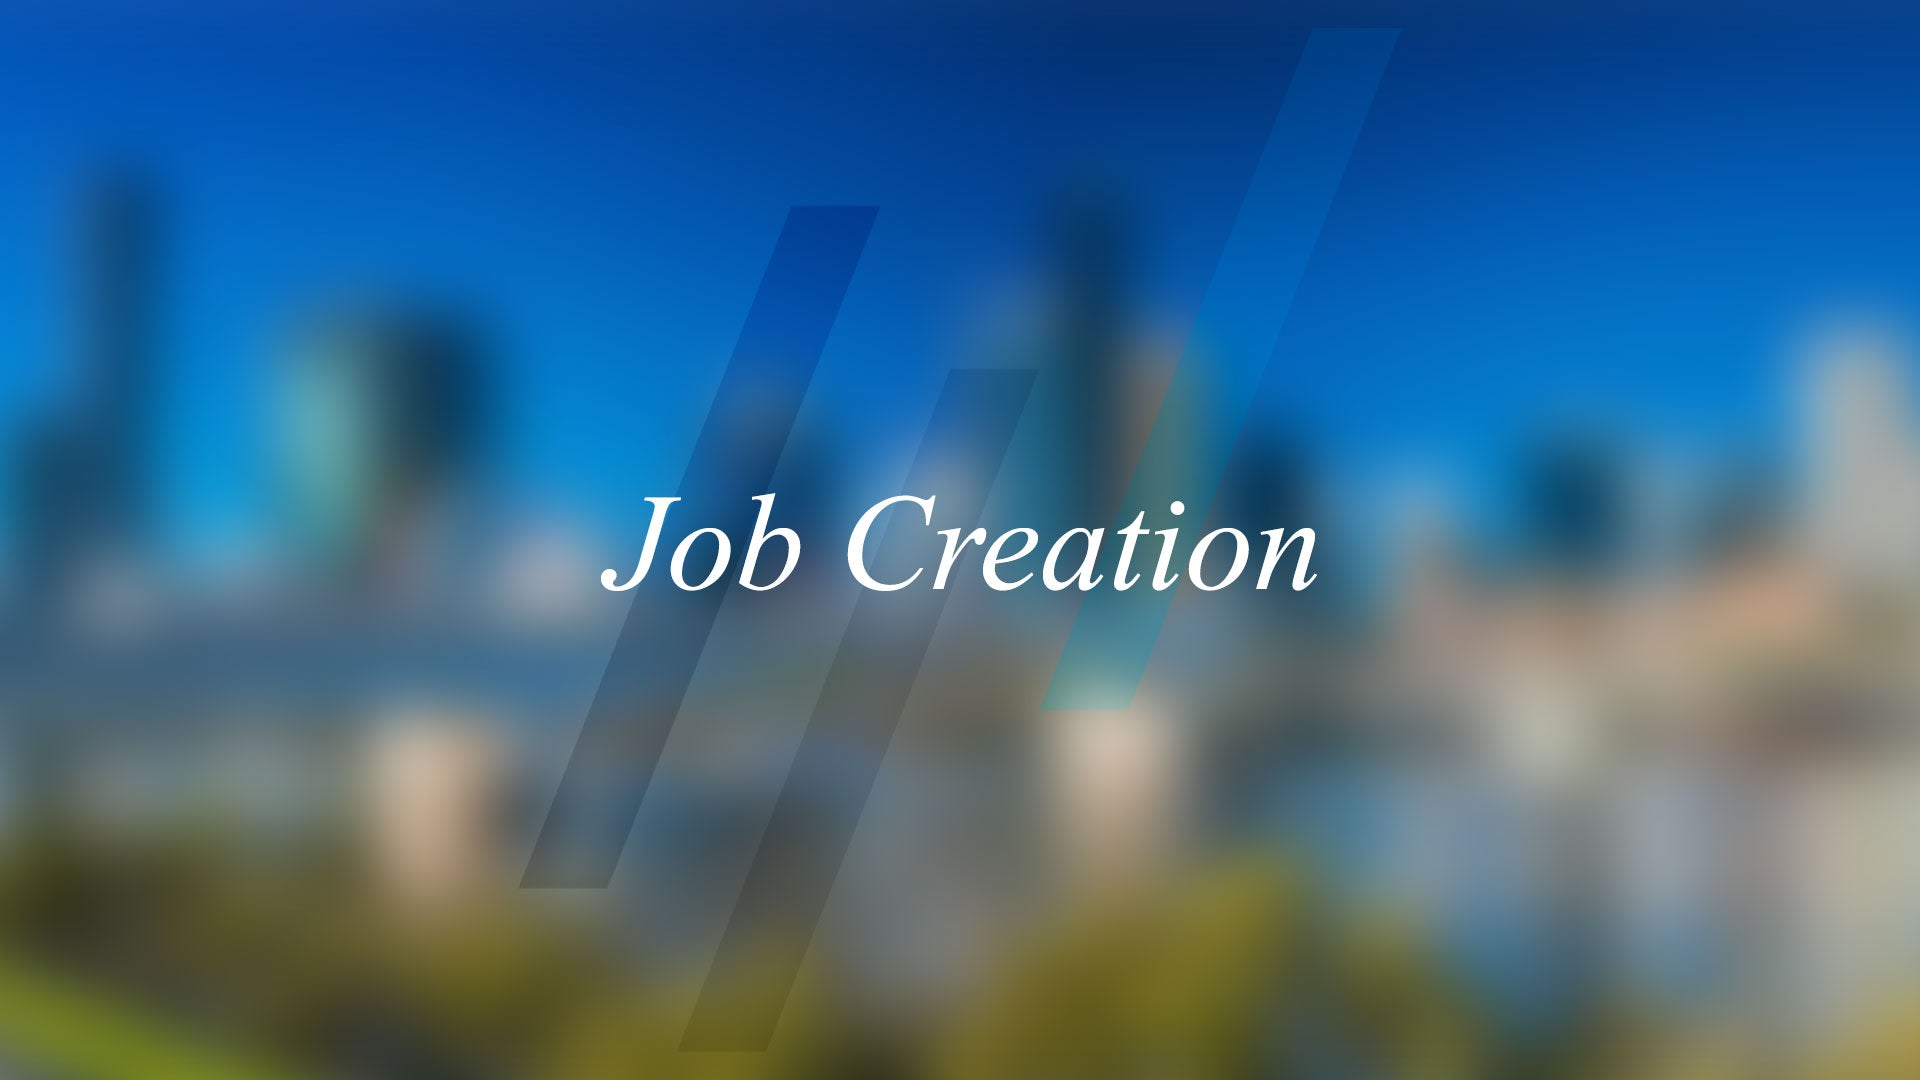 Job Creation